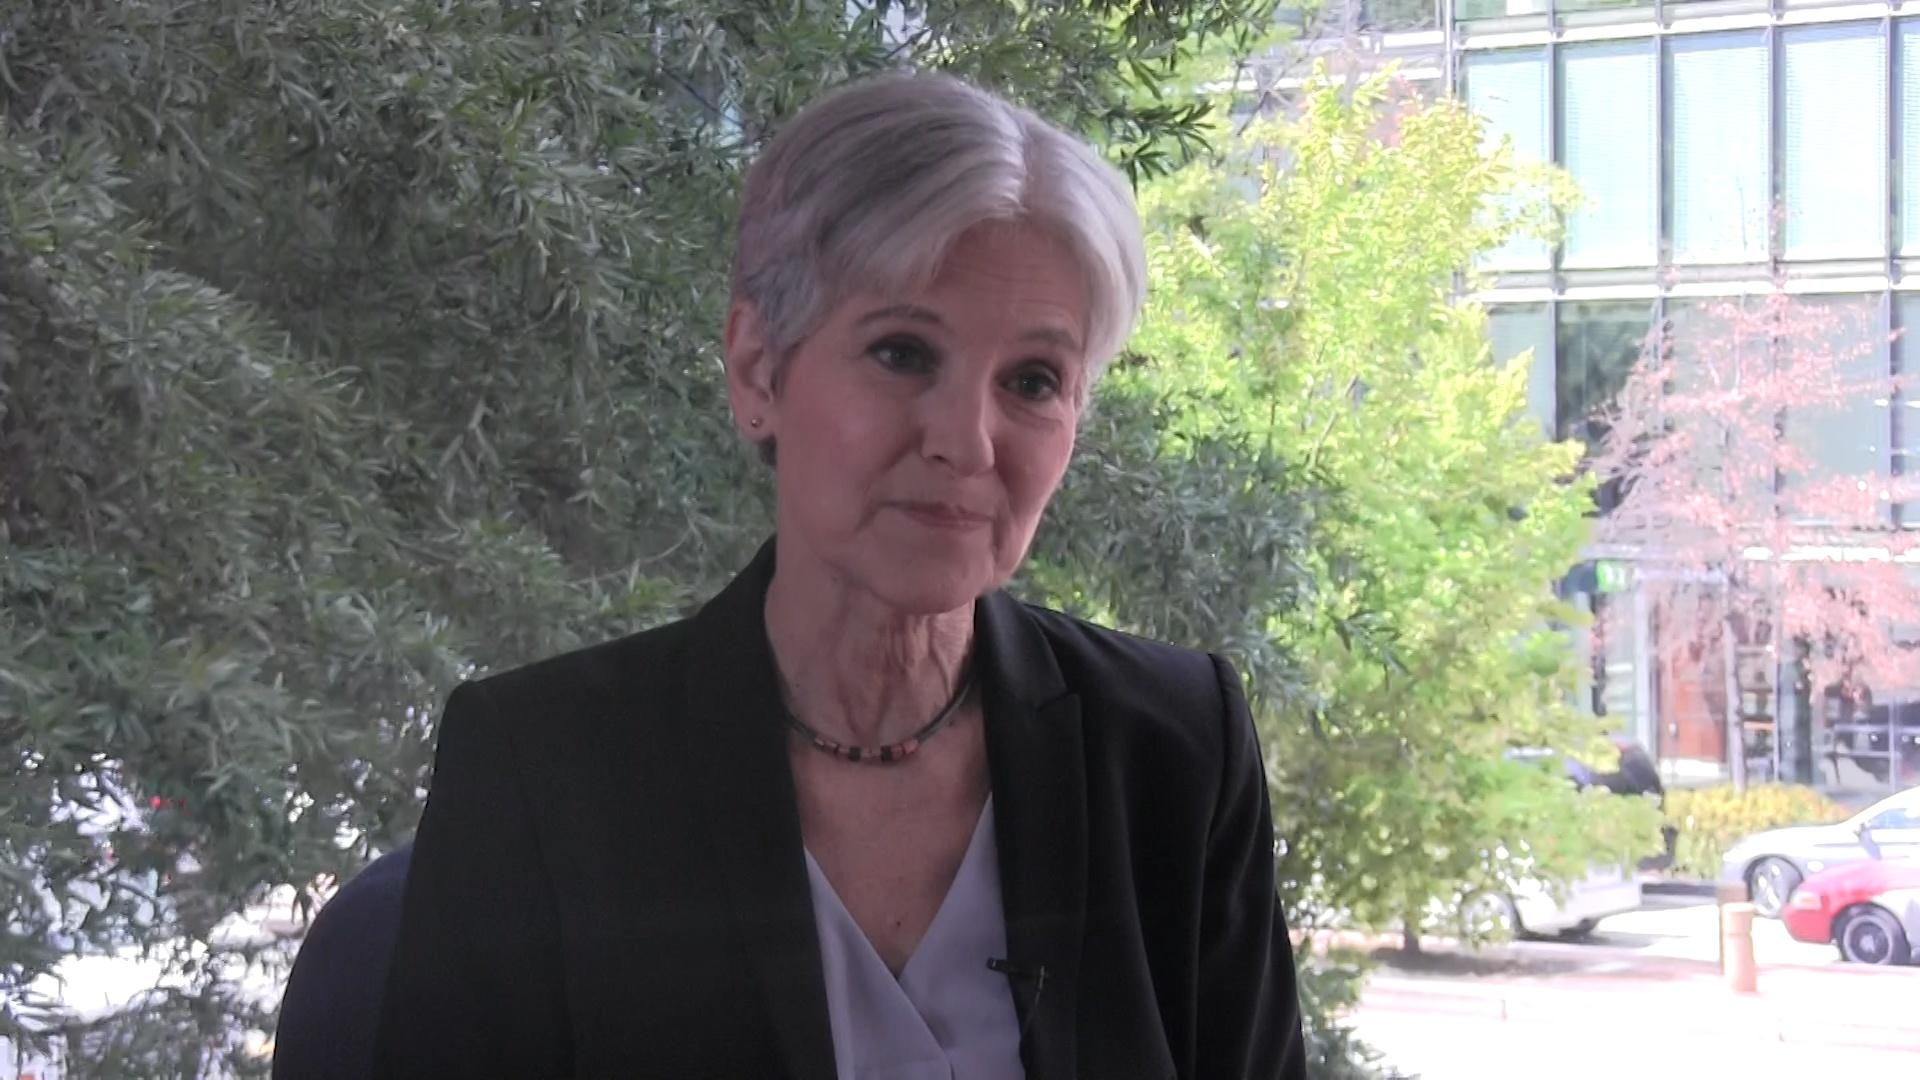 TTC Extra: Exclusive Interview with Green Party Presidential Nominee Jill Stein